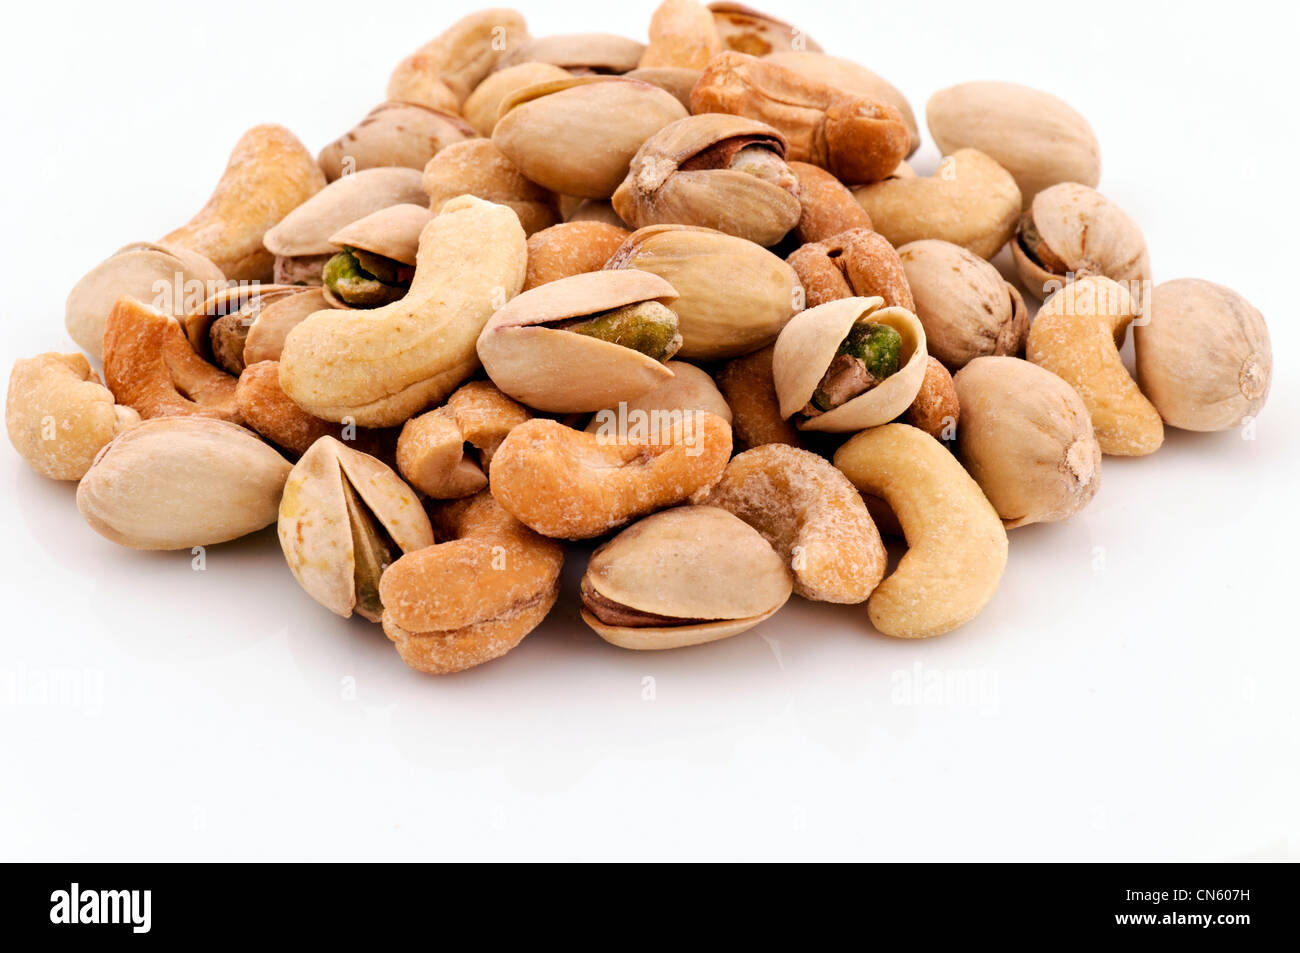 Whole nuts mixed - Stock Image